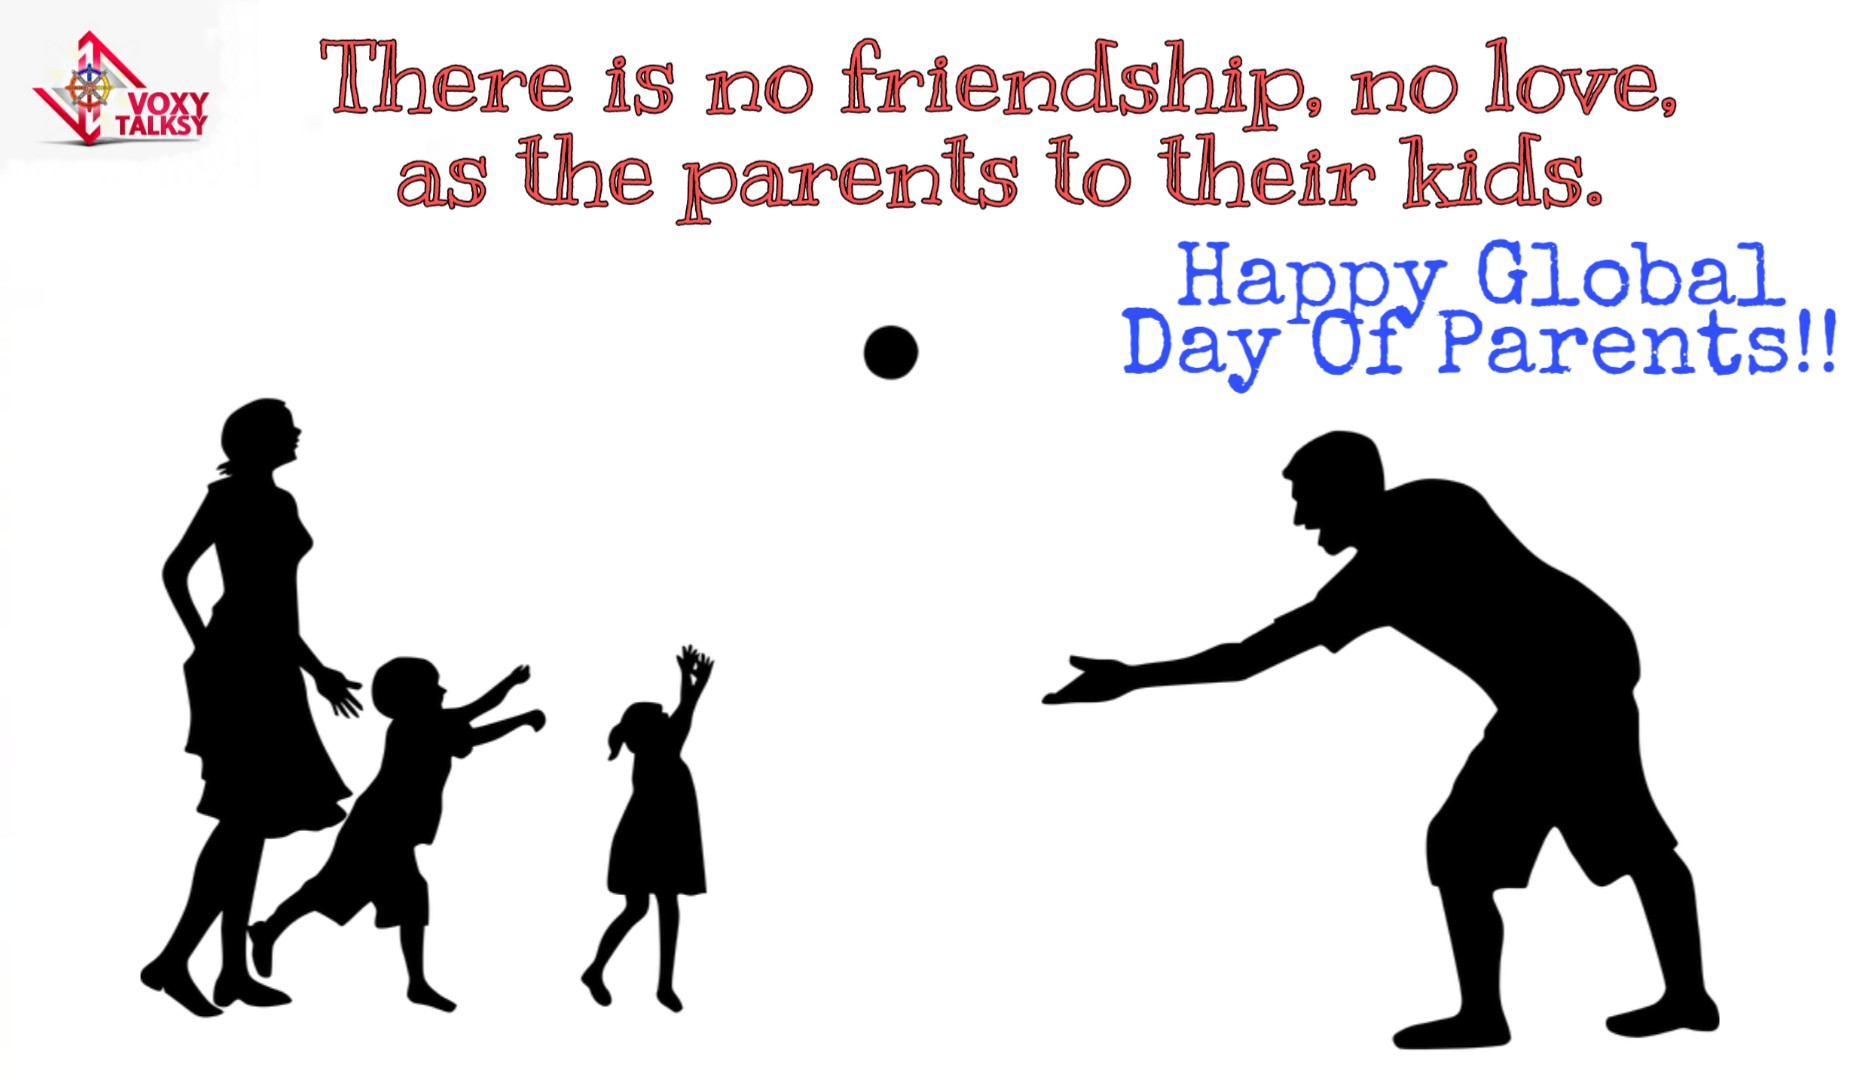 Global Day Of Parents 2020: Wishes, About & Celebration | Parents Day| VoxyTalksy